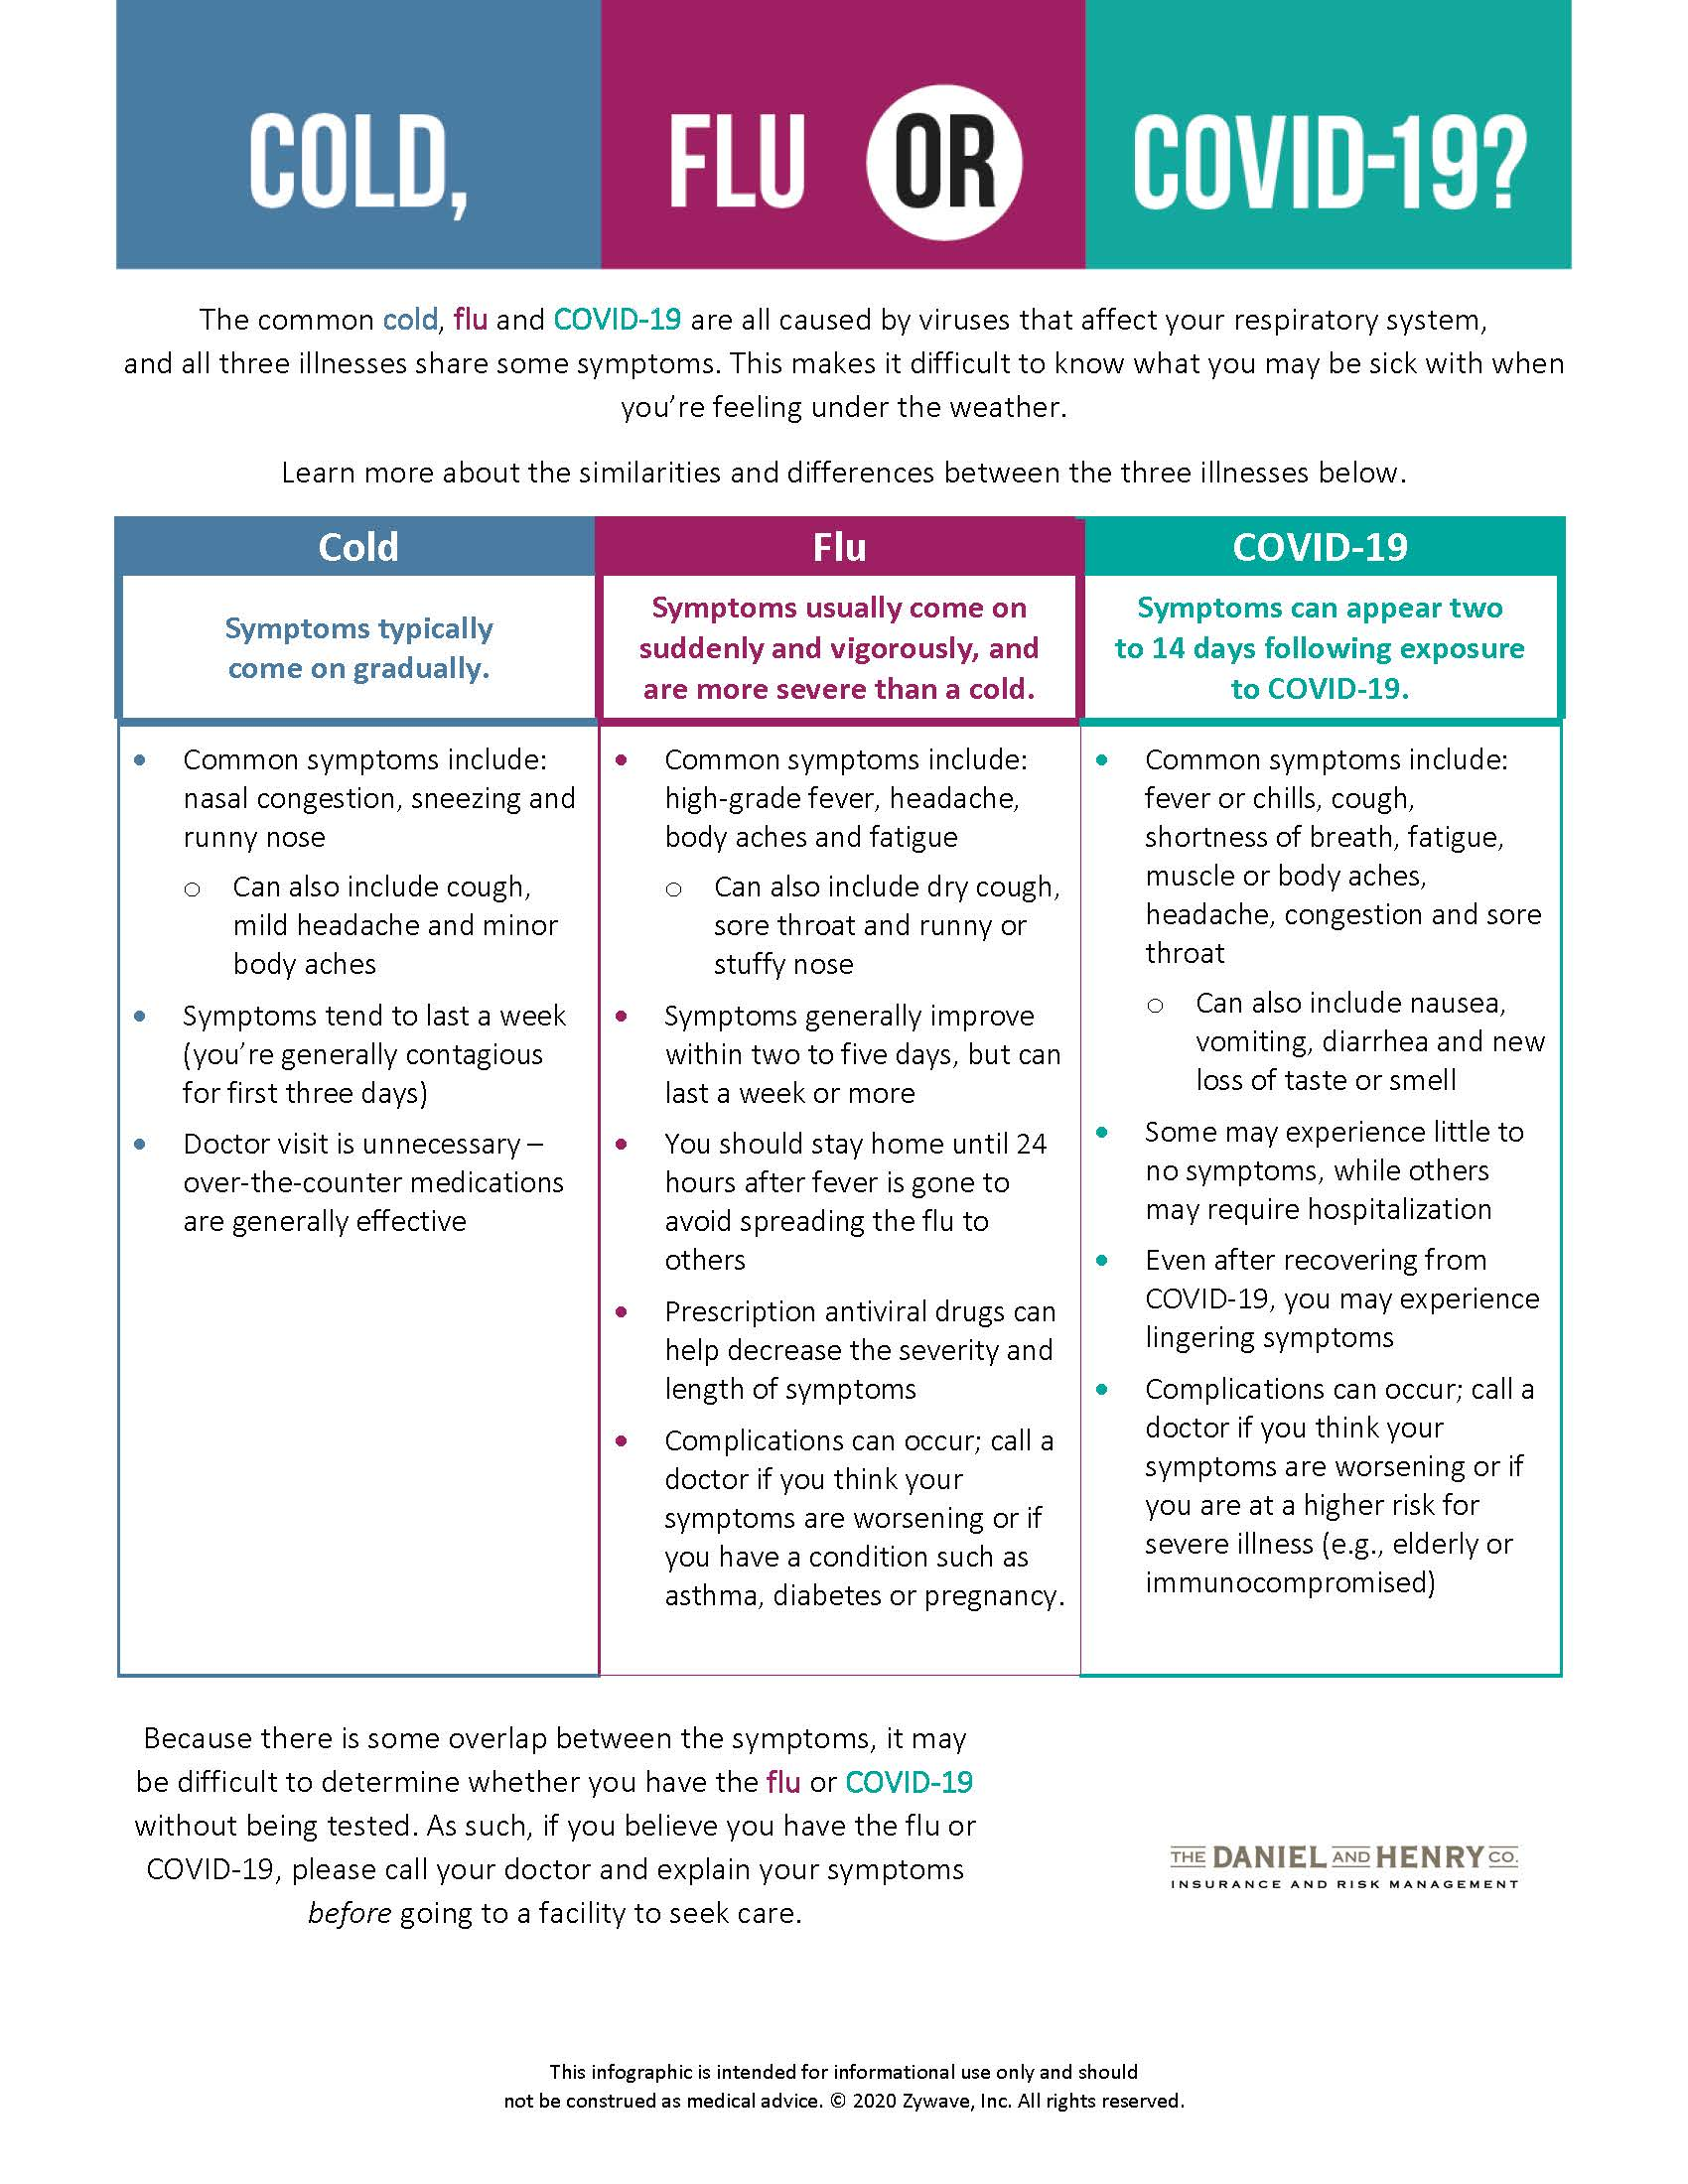 Cold Flu or COVID-19 Infographic - Oct 20